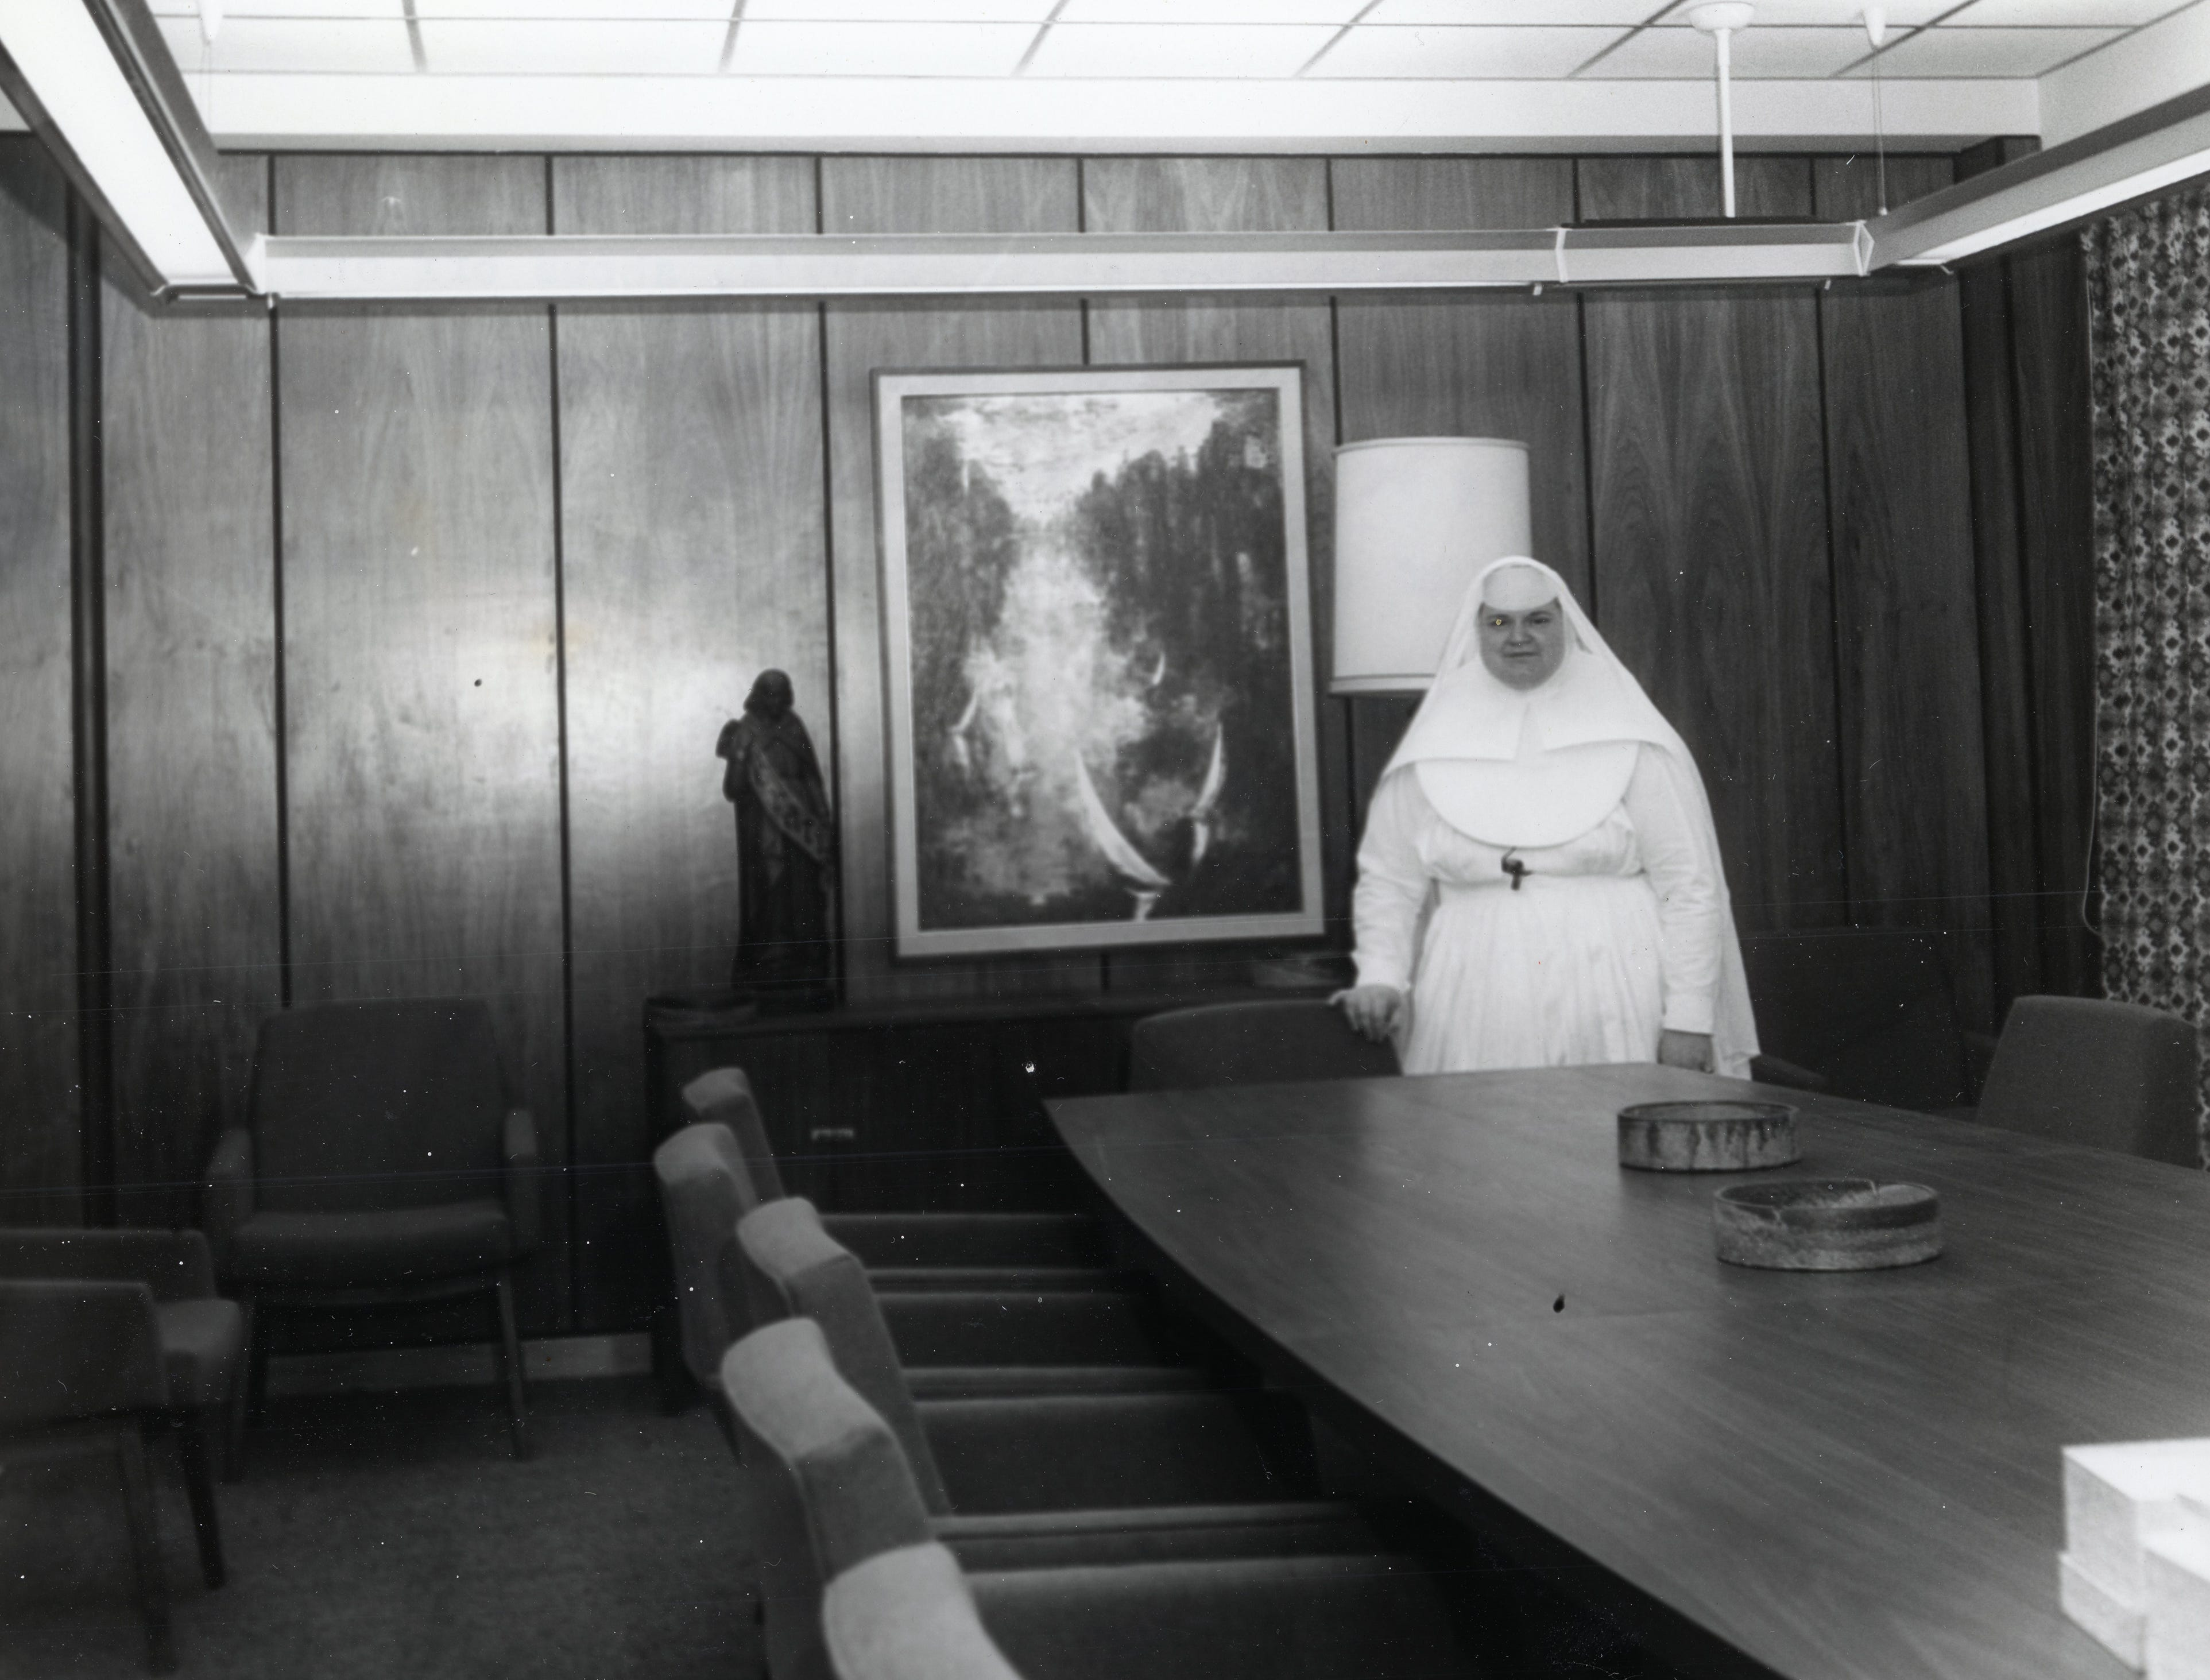 Sister Mary Laura, administrator at St. Mary's, shows off one of the conference rooms, tastefully decorated in the new Annunciation Wing at St. Mary's Hospital in March 1966.